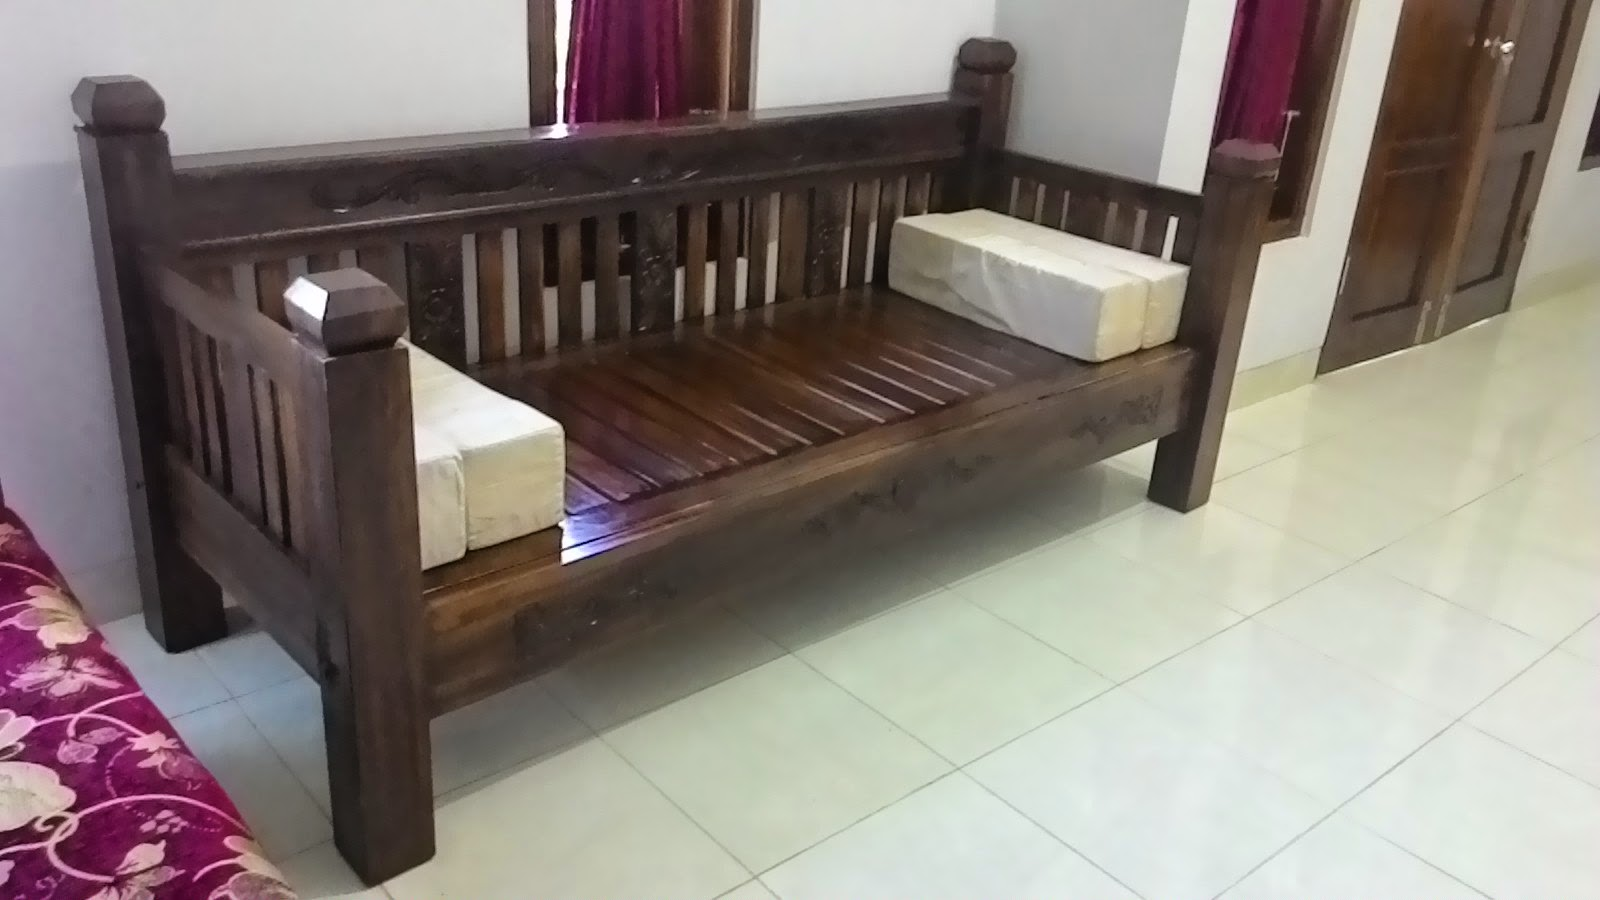 Jual Furniture Murah Di Jogja Supplier Mebel Jogja